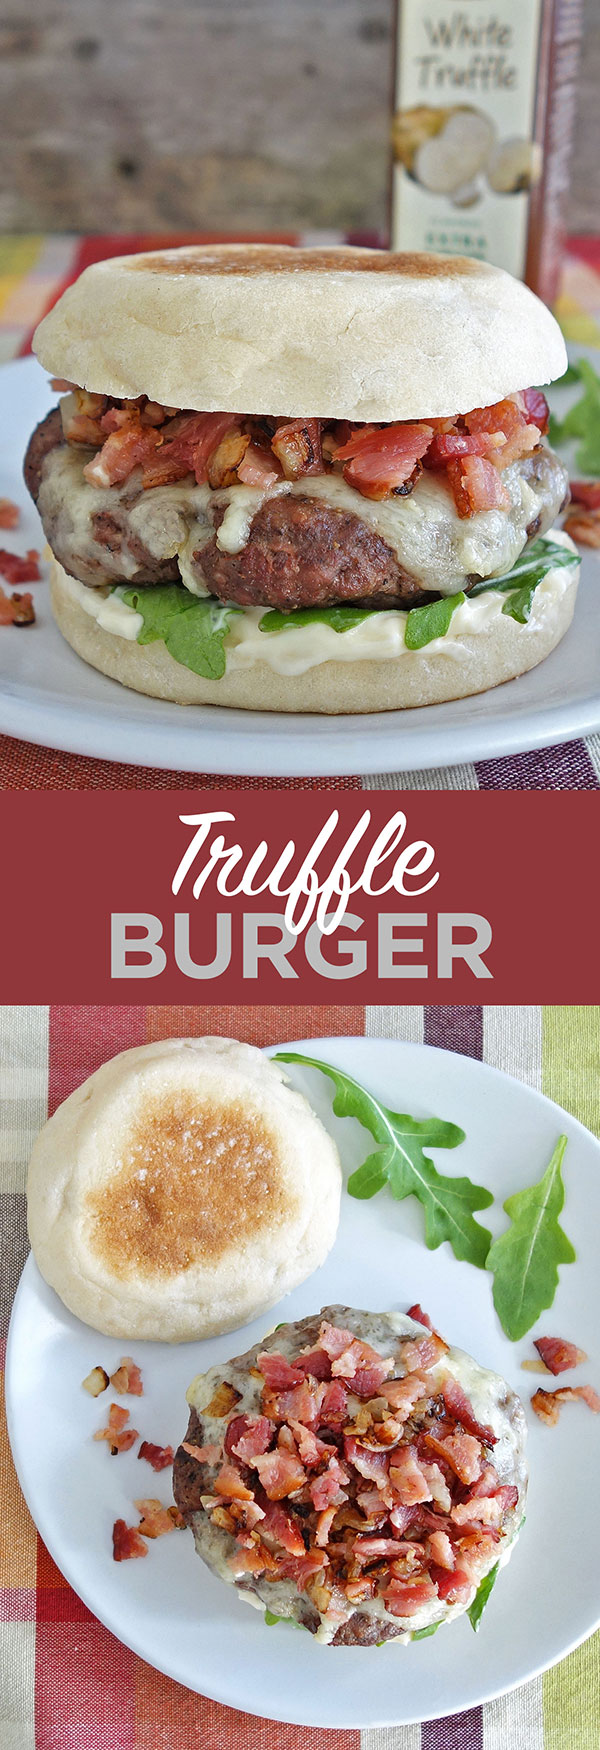 The truffle burger features the delicious flavor of truffle aioli and then is topped off with some diced bacon and onion.